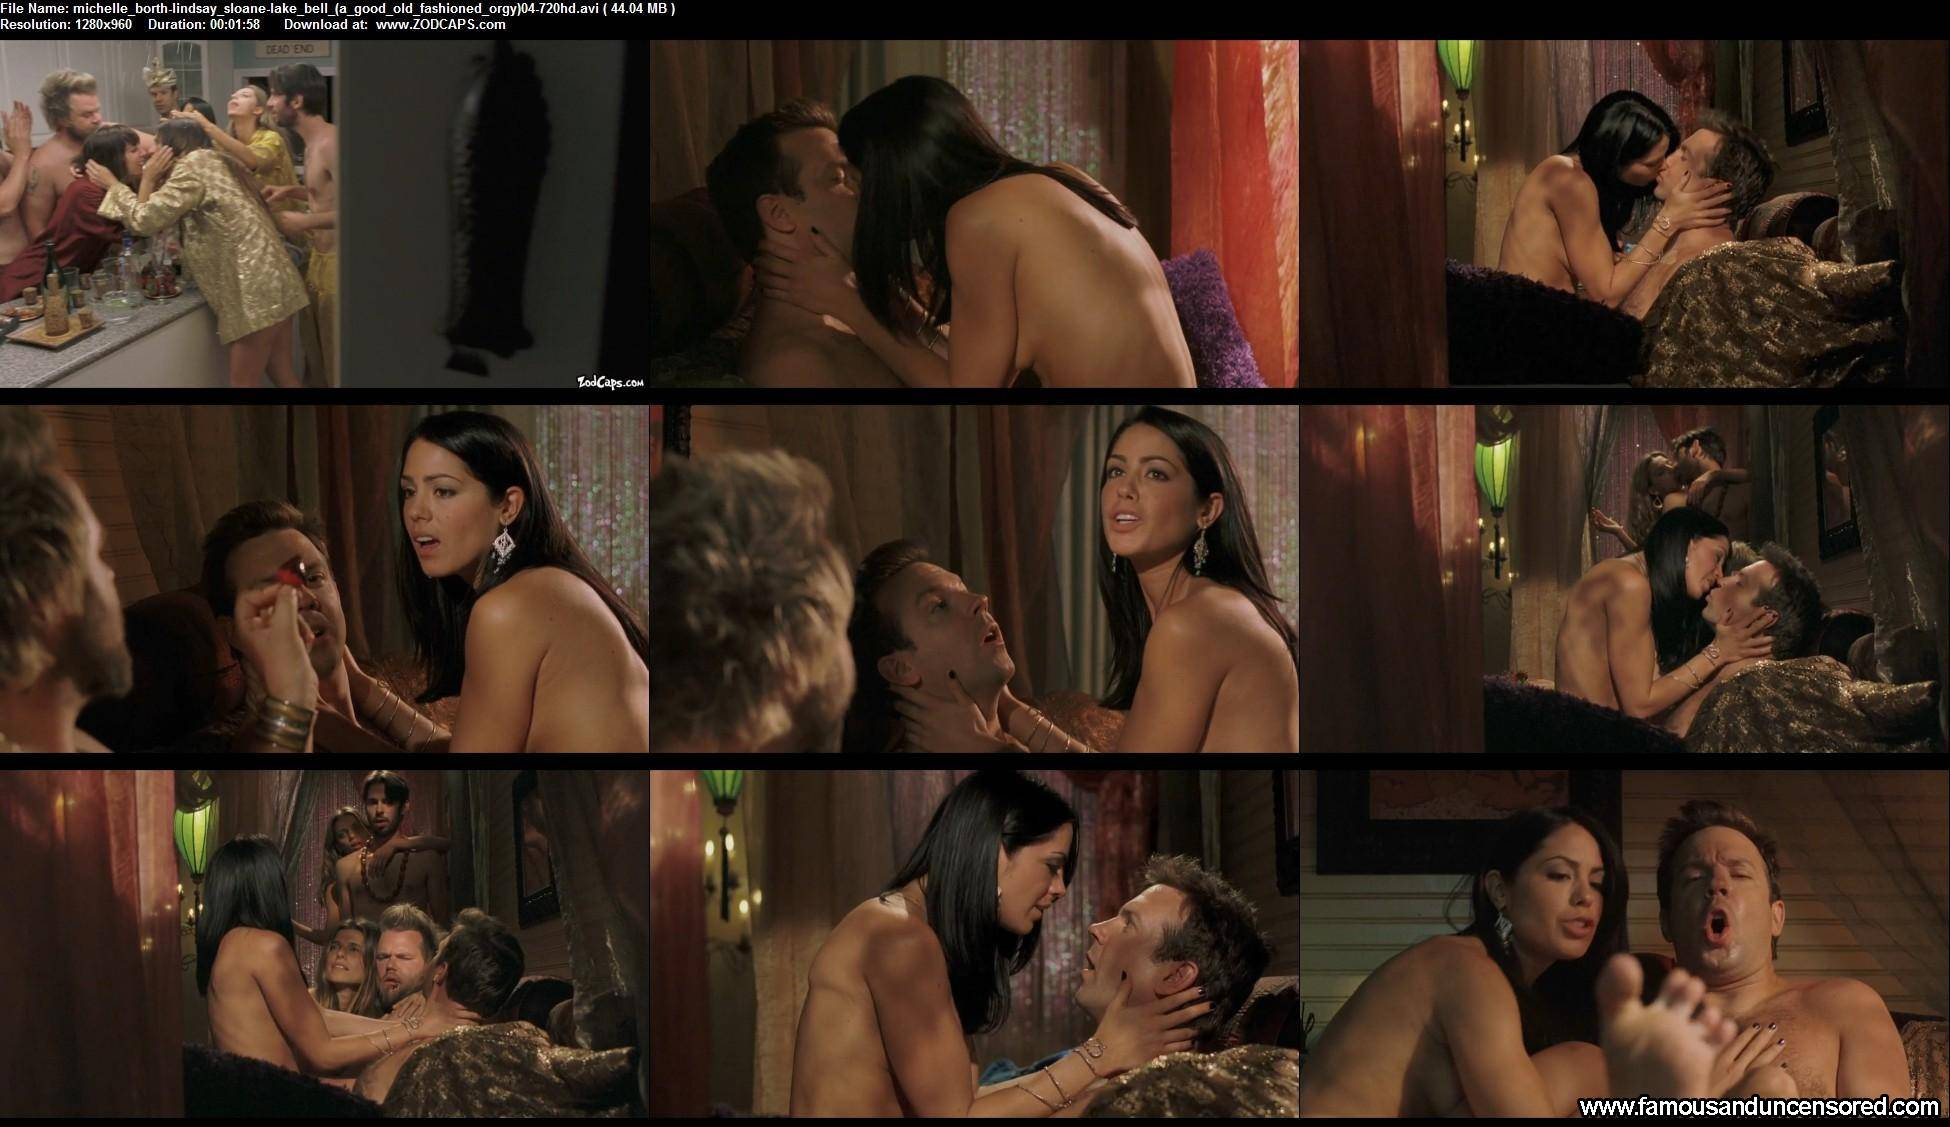 Lindsay Sloane A Good Old Fashioned Orgy A Good Old ...